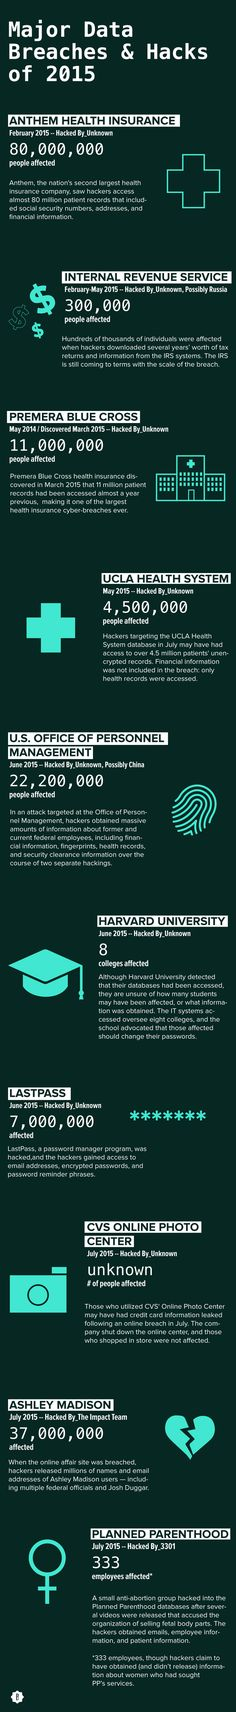 The Biggest Data Breaches Of 2015 So Far, In One Incredibly Alarming Infographic | Bustle